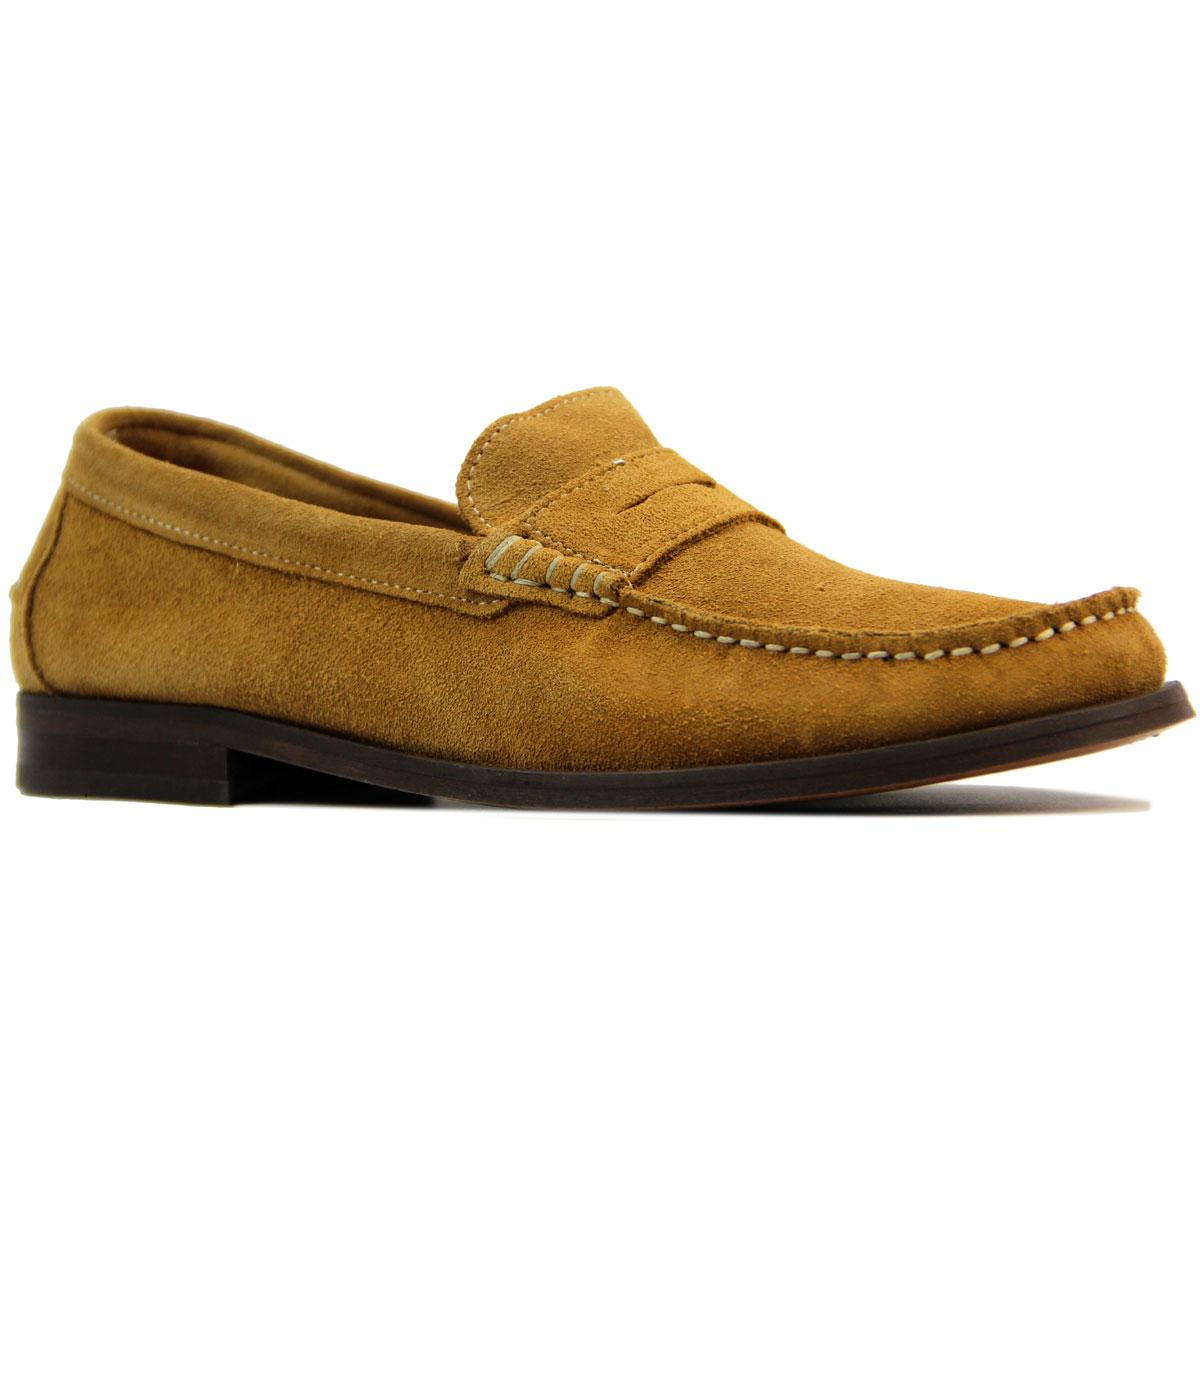 016bc9e0ee8 H by HUDSON Augusta Suede Retro 1960s Mod Penny Loafers in Camel